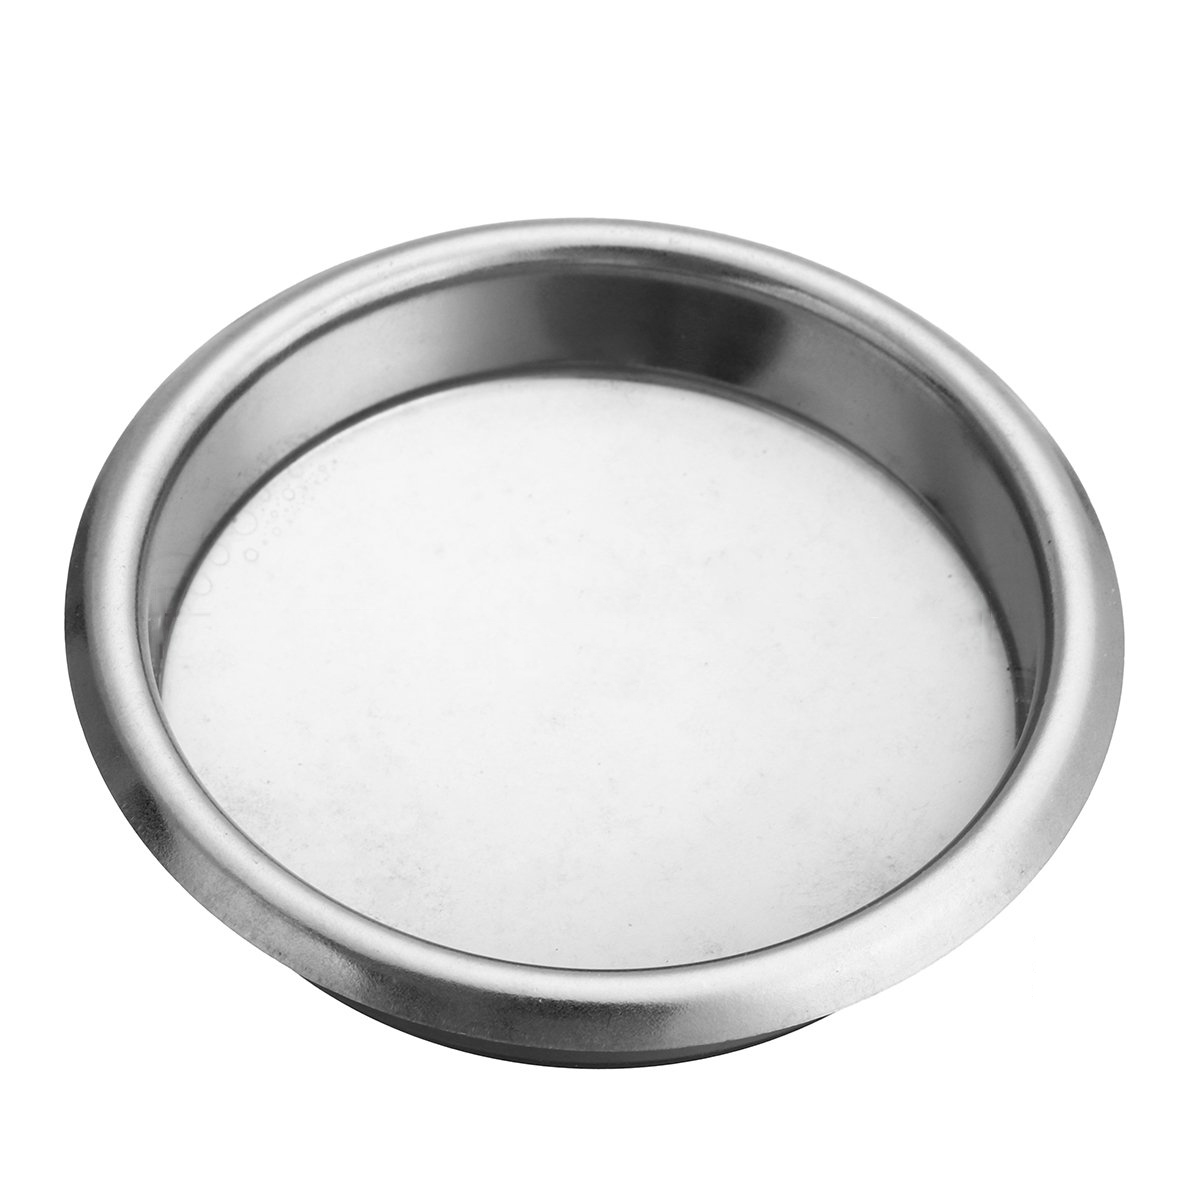 58Mm Coffee Machine Blank Filter/Stainless Steel Backwash Cleaning Blind Bowl Coffee Machine Accessories Blind Cup58Mm Coffee Machine Blank Filter/Stainless Steel Backwash Cleaning Blind Bowl Coffee Machine Accessories Blind Cup